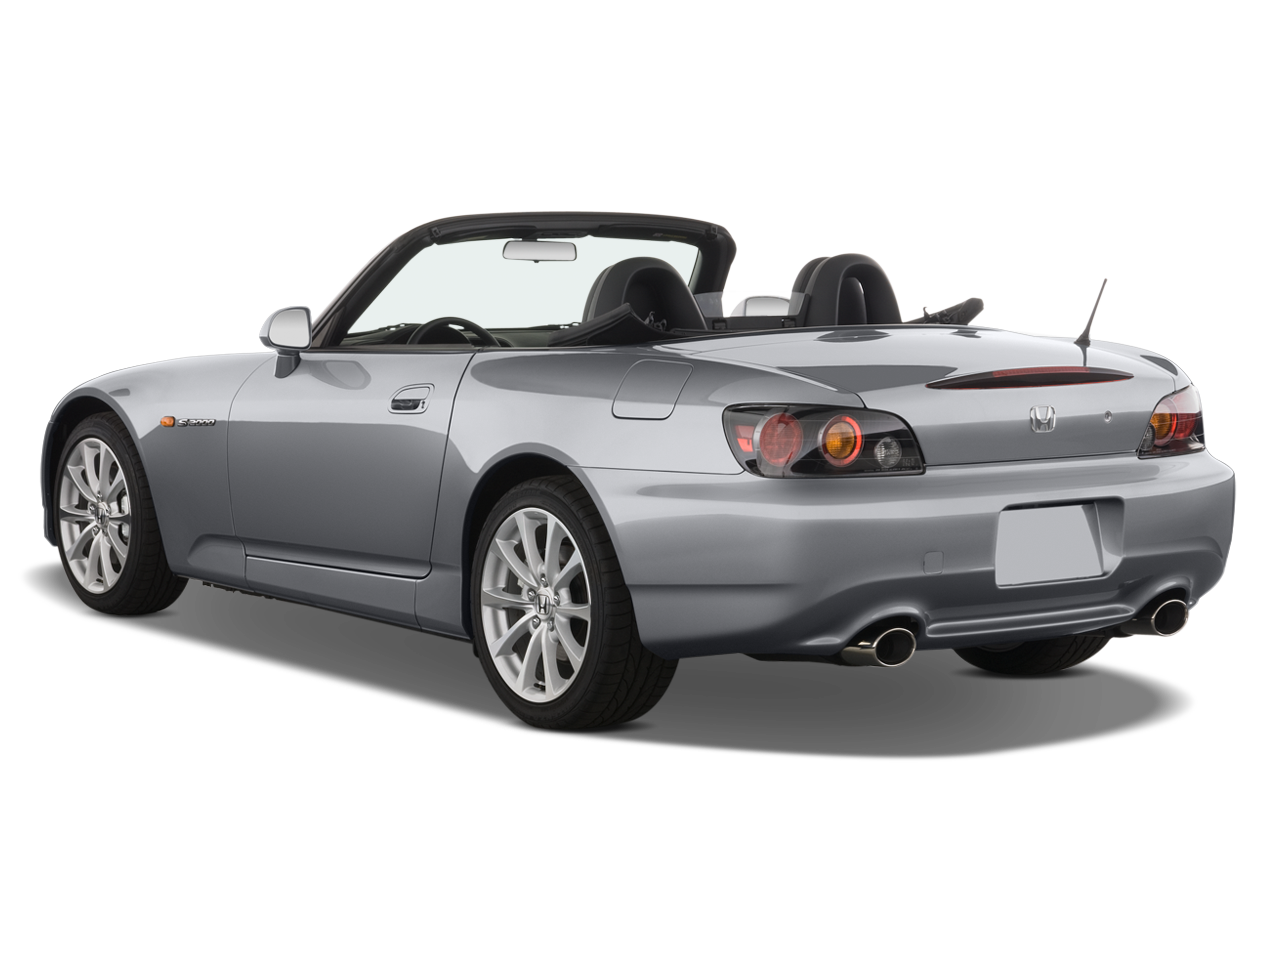 2009 Honda S2000 Cr Honda Roadster Sport Coupe Review